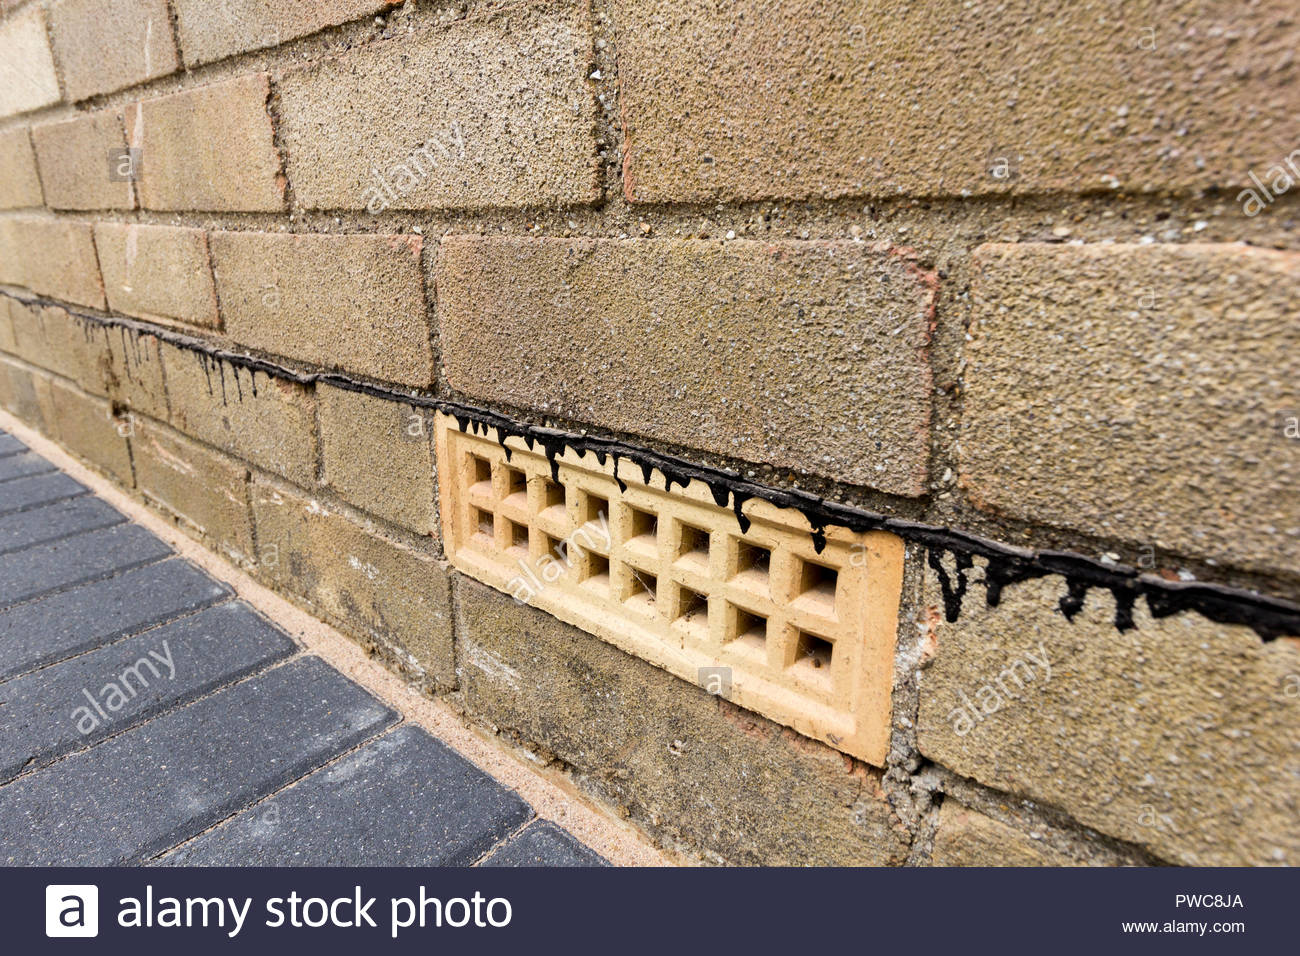 Air brick and bitumen damp proof course situated in an exterior wall of a property - Stock Image